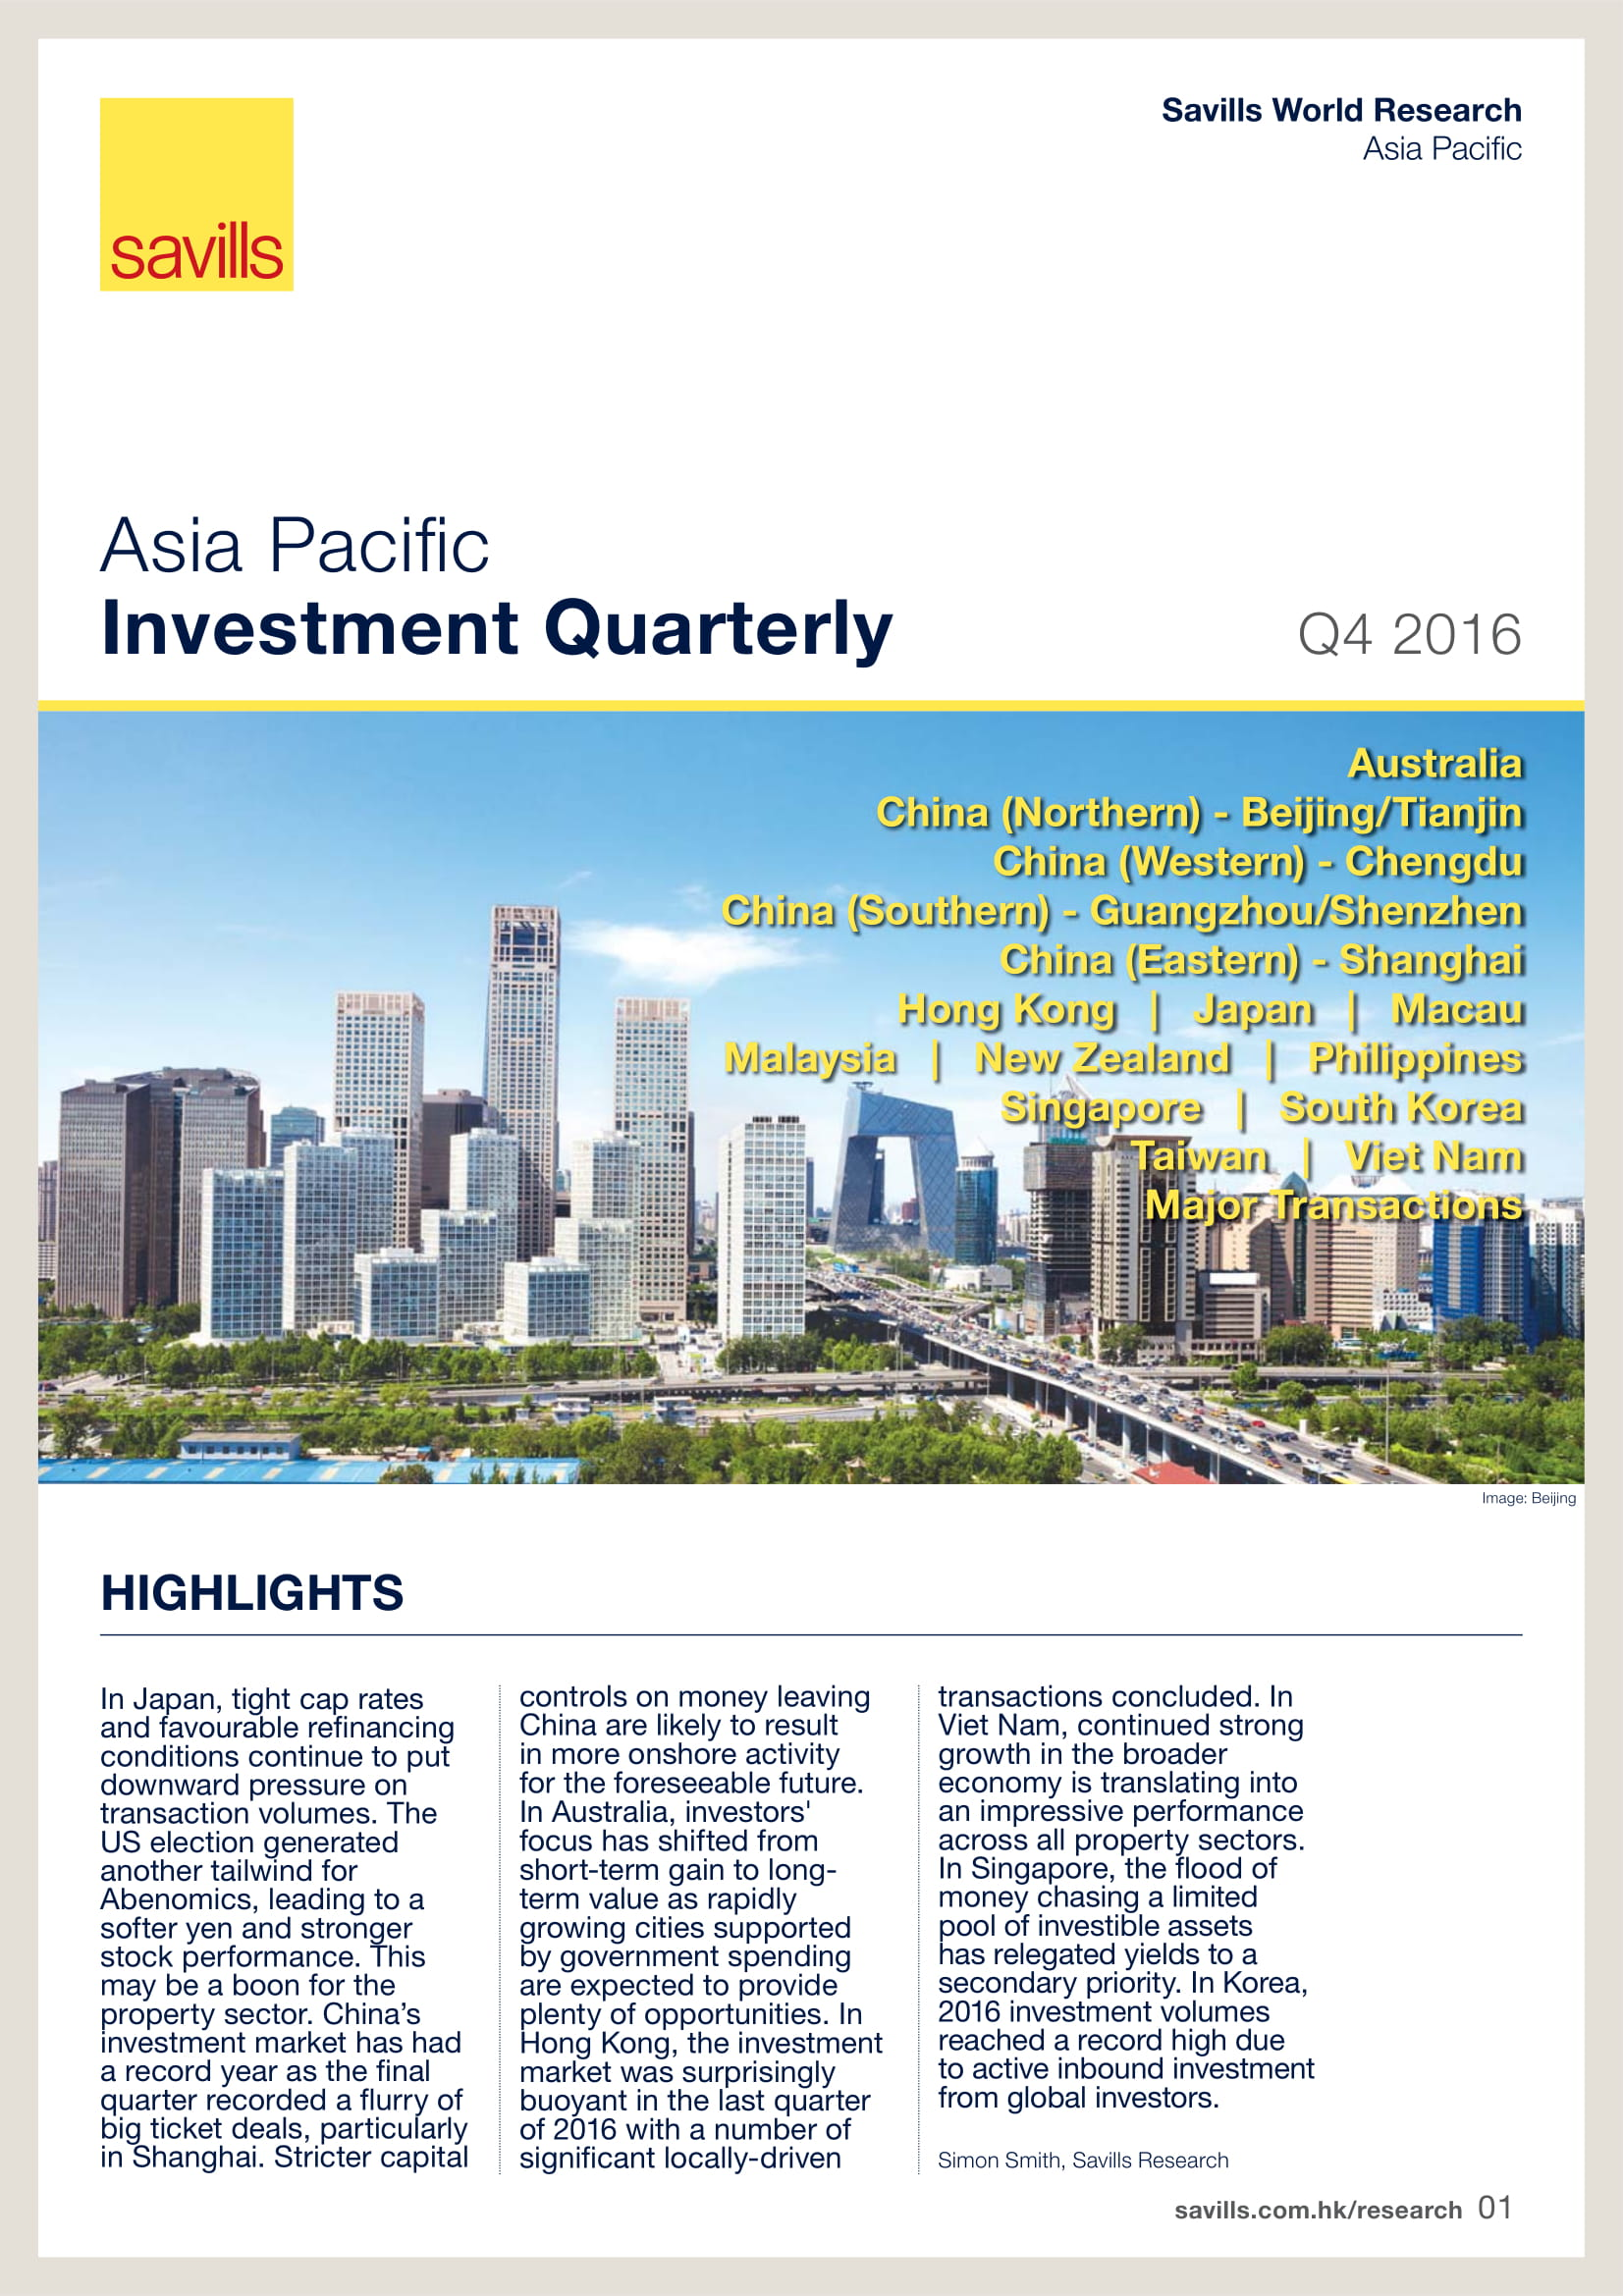 Asia Pacific Investment Quarterly Q4 2016